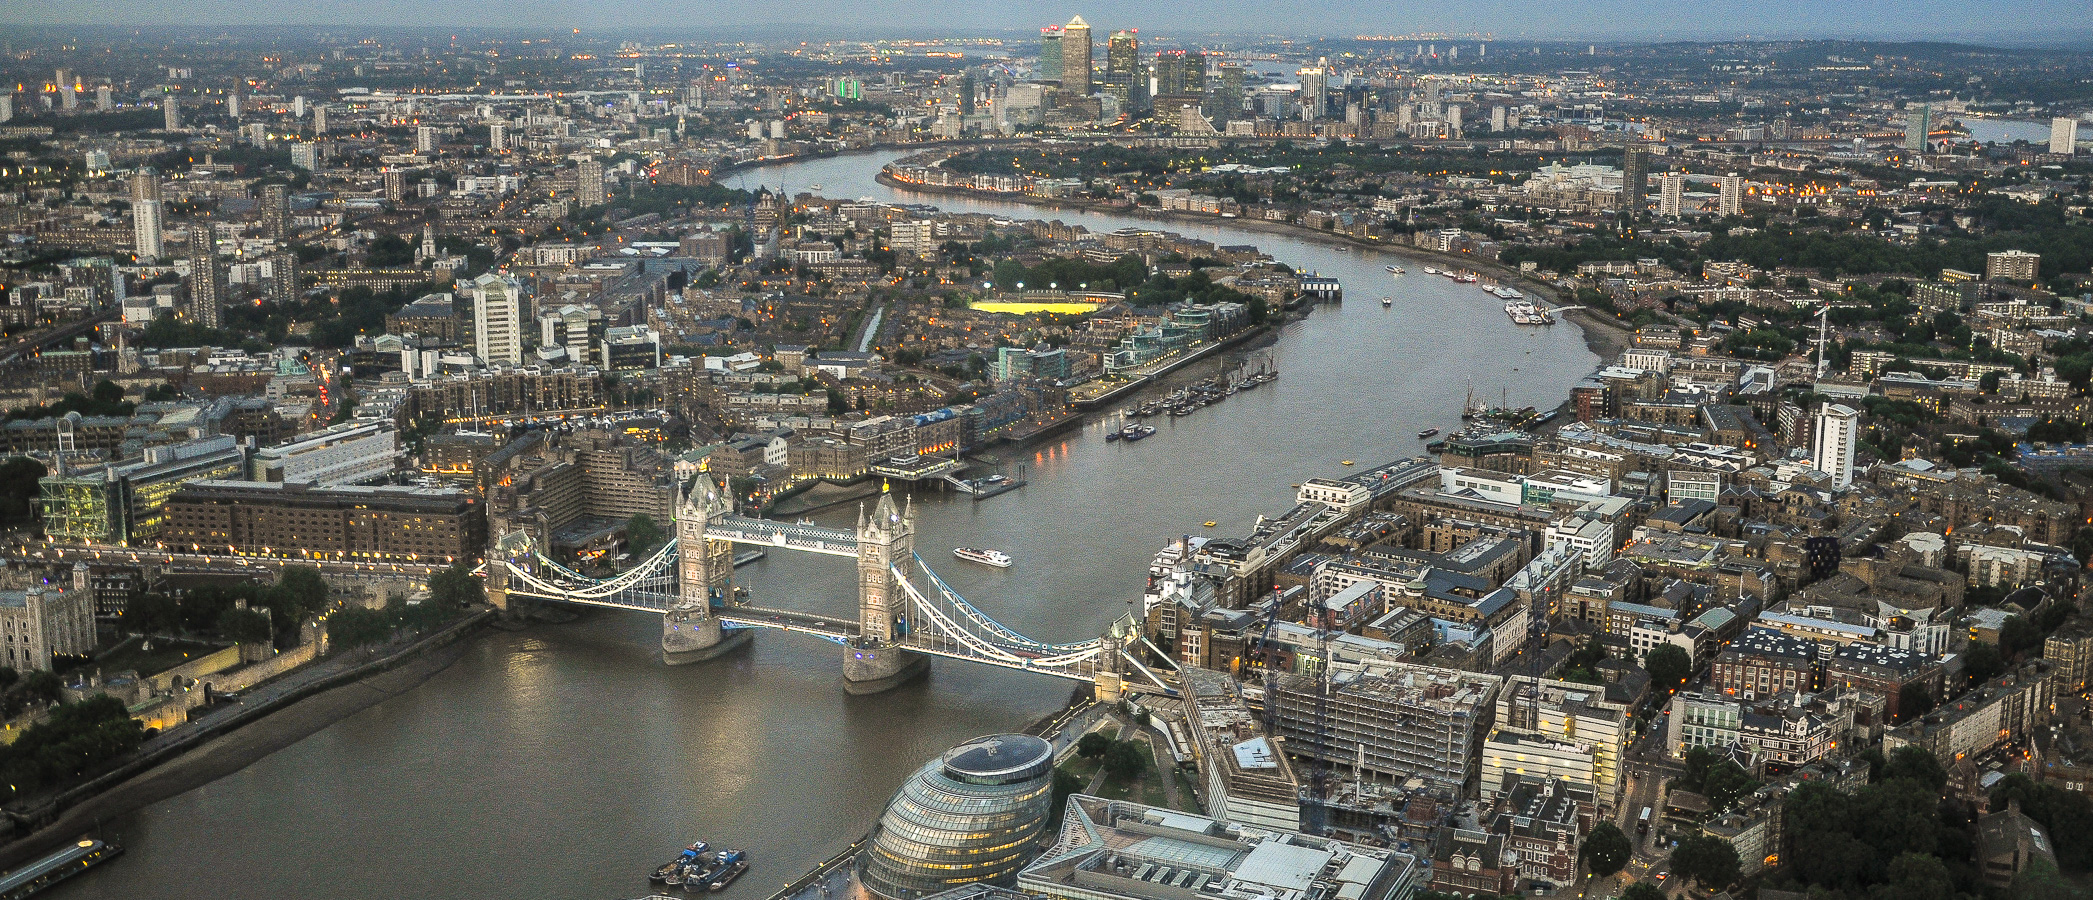 Tower Bridge, London, seen from The Shard